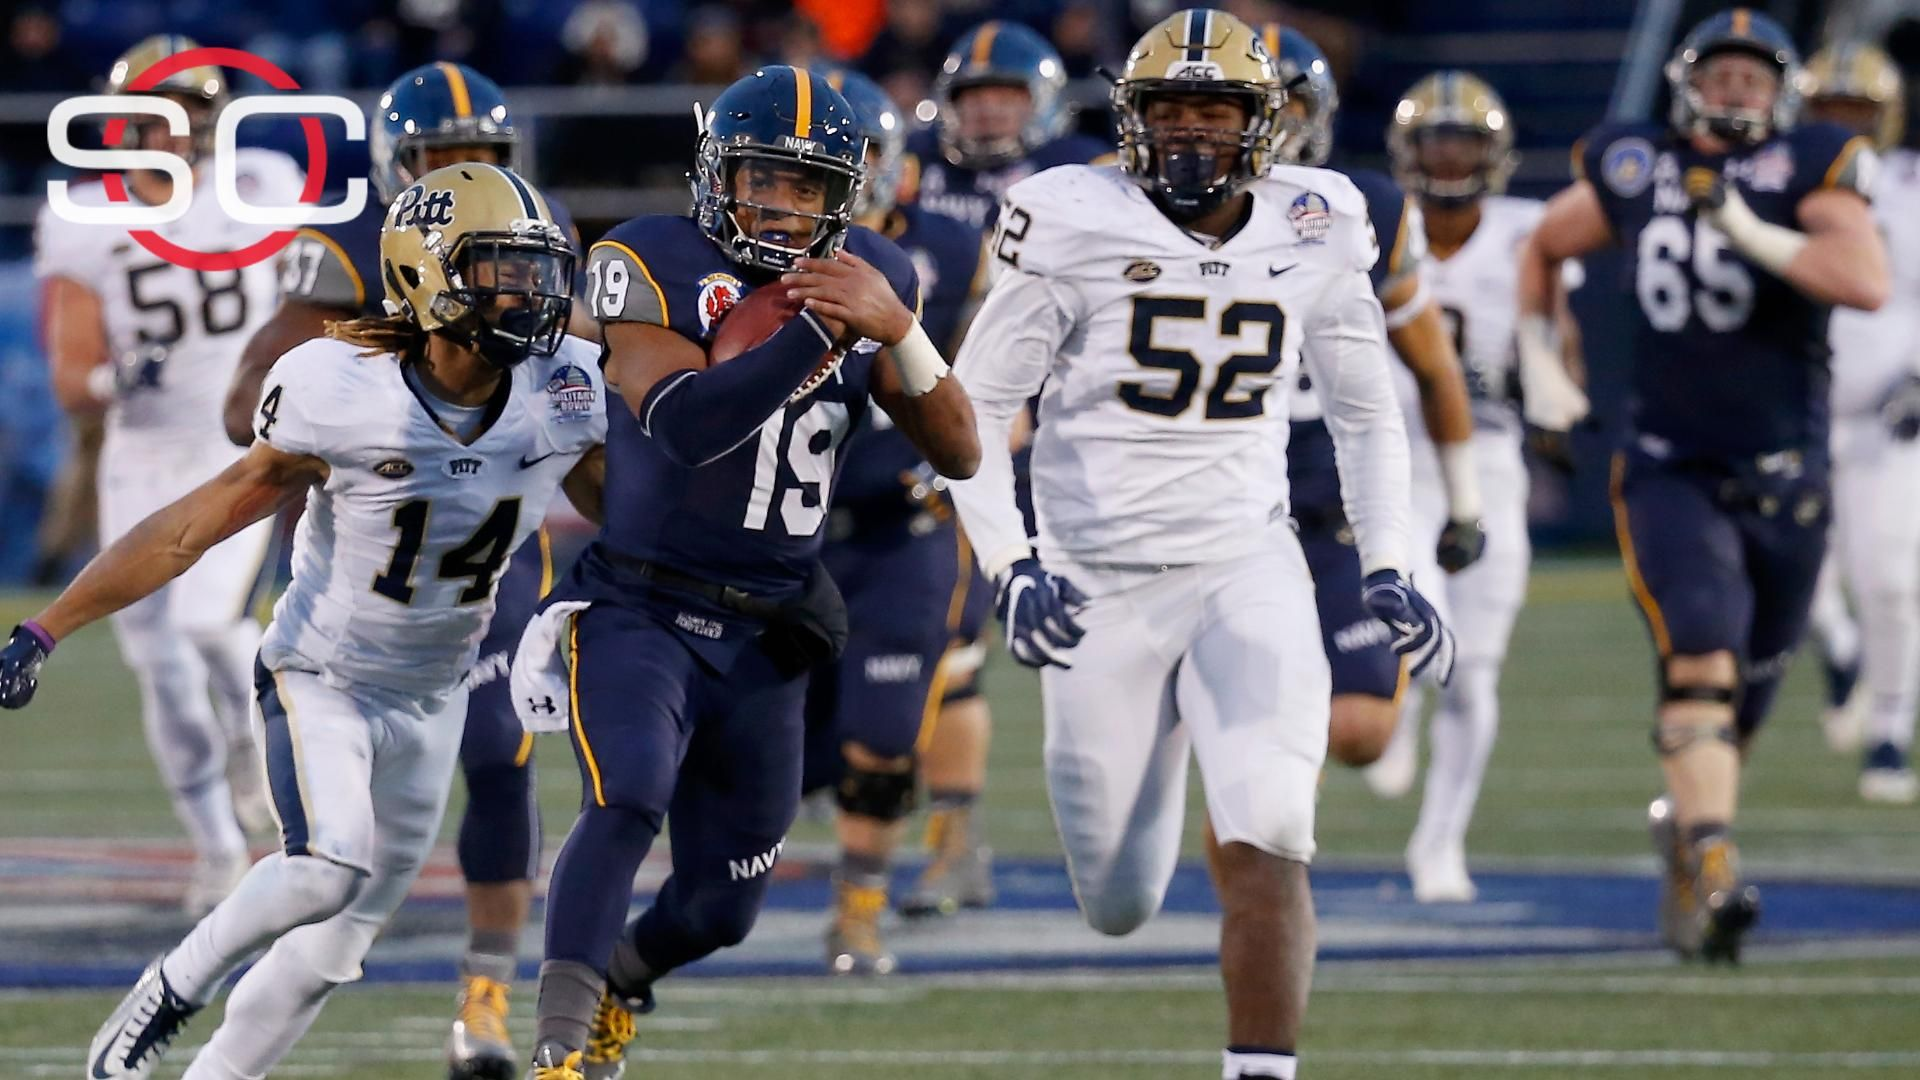 Reynolds leads Navy to Military Bowl victory